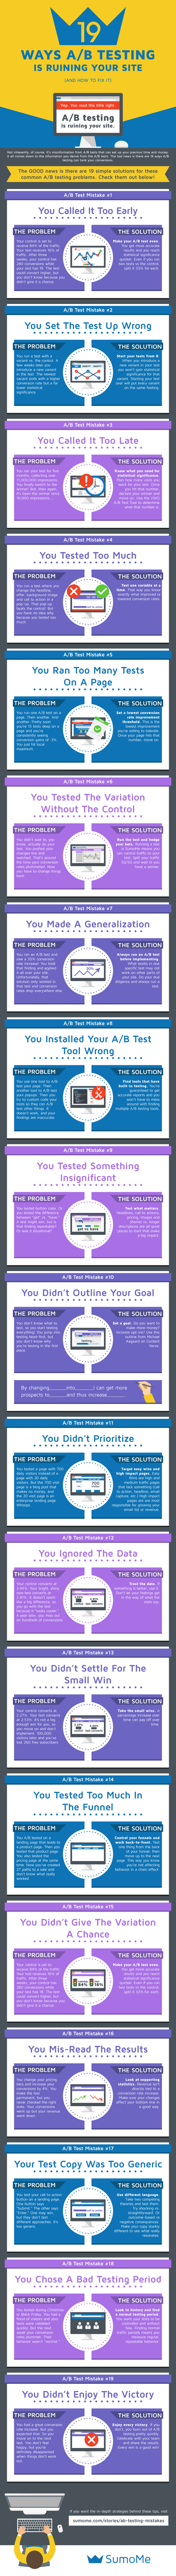 A/B Testing Mistakes Infographic